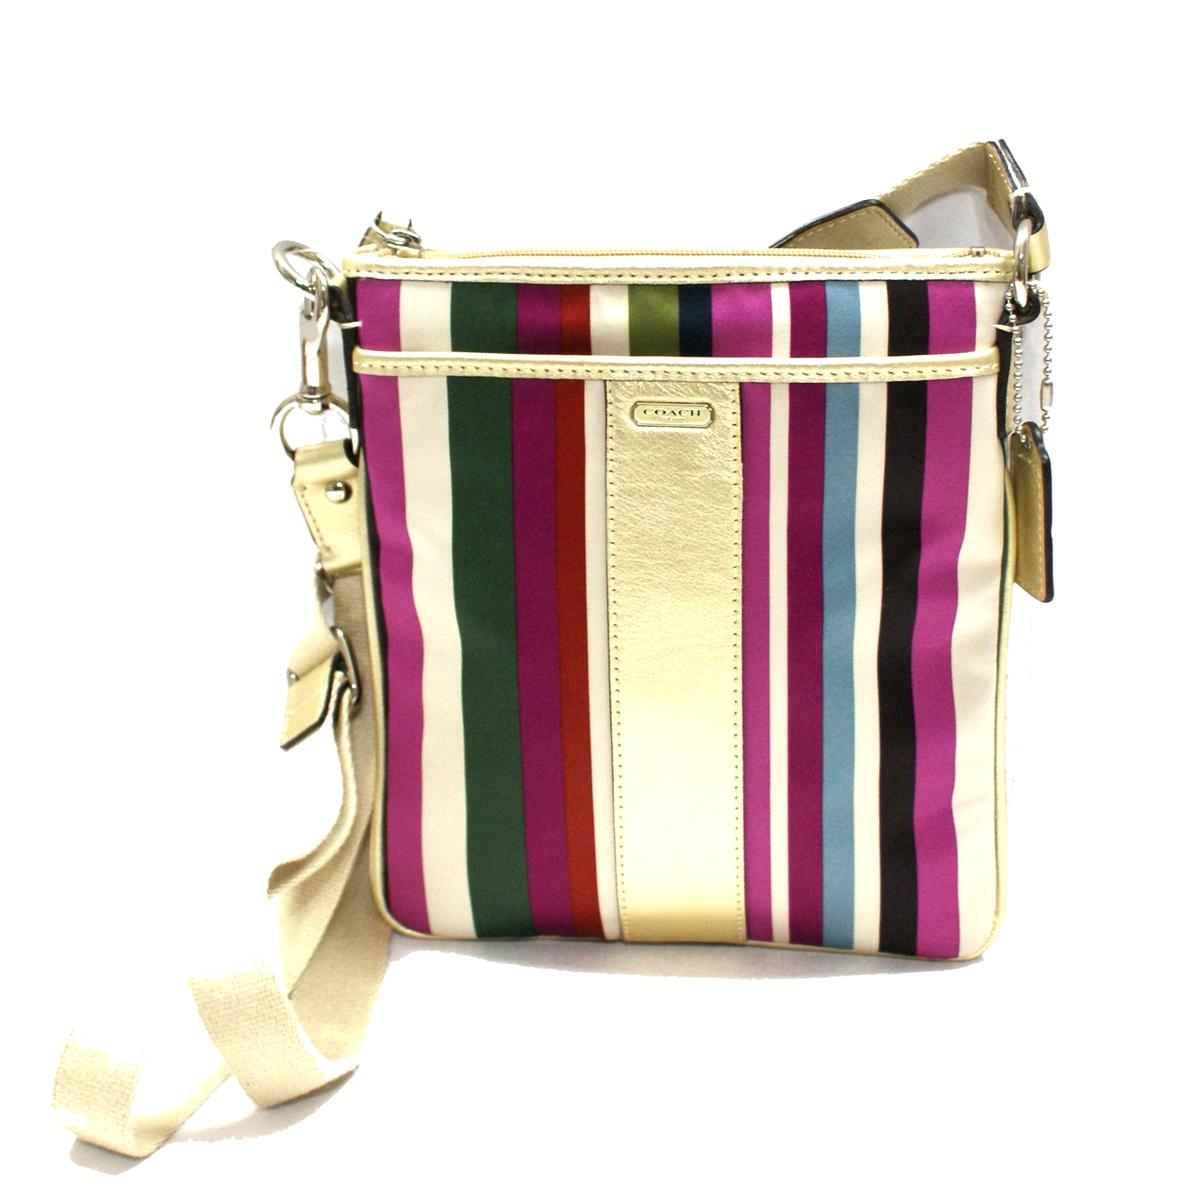 8d3fd4fd43 Coach Legacy Stripe Swingpack  Crossbody Bag Multi-color  48615B ...